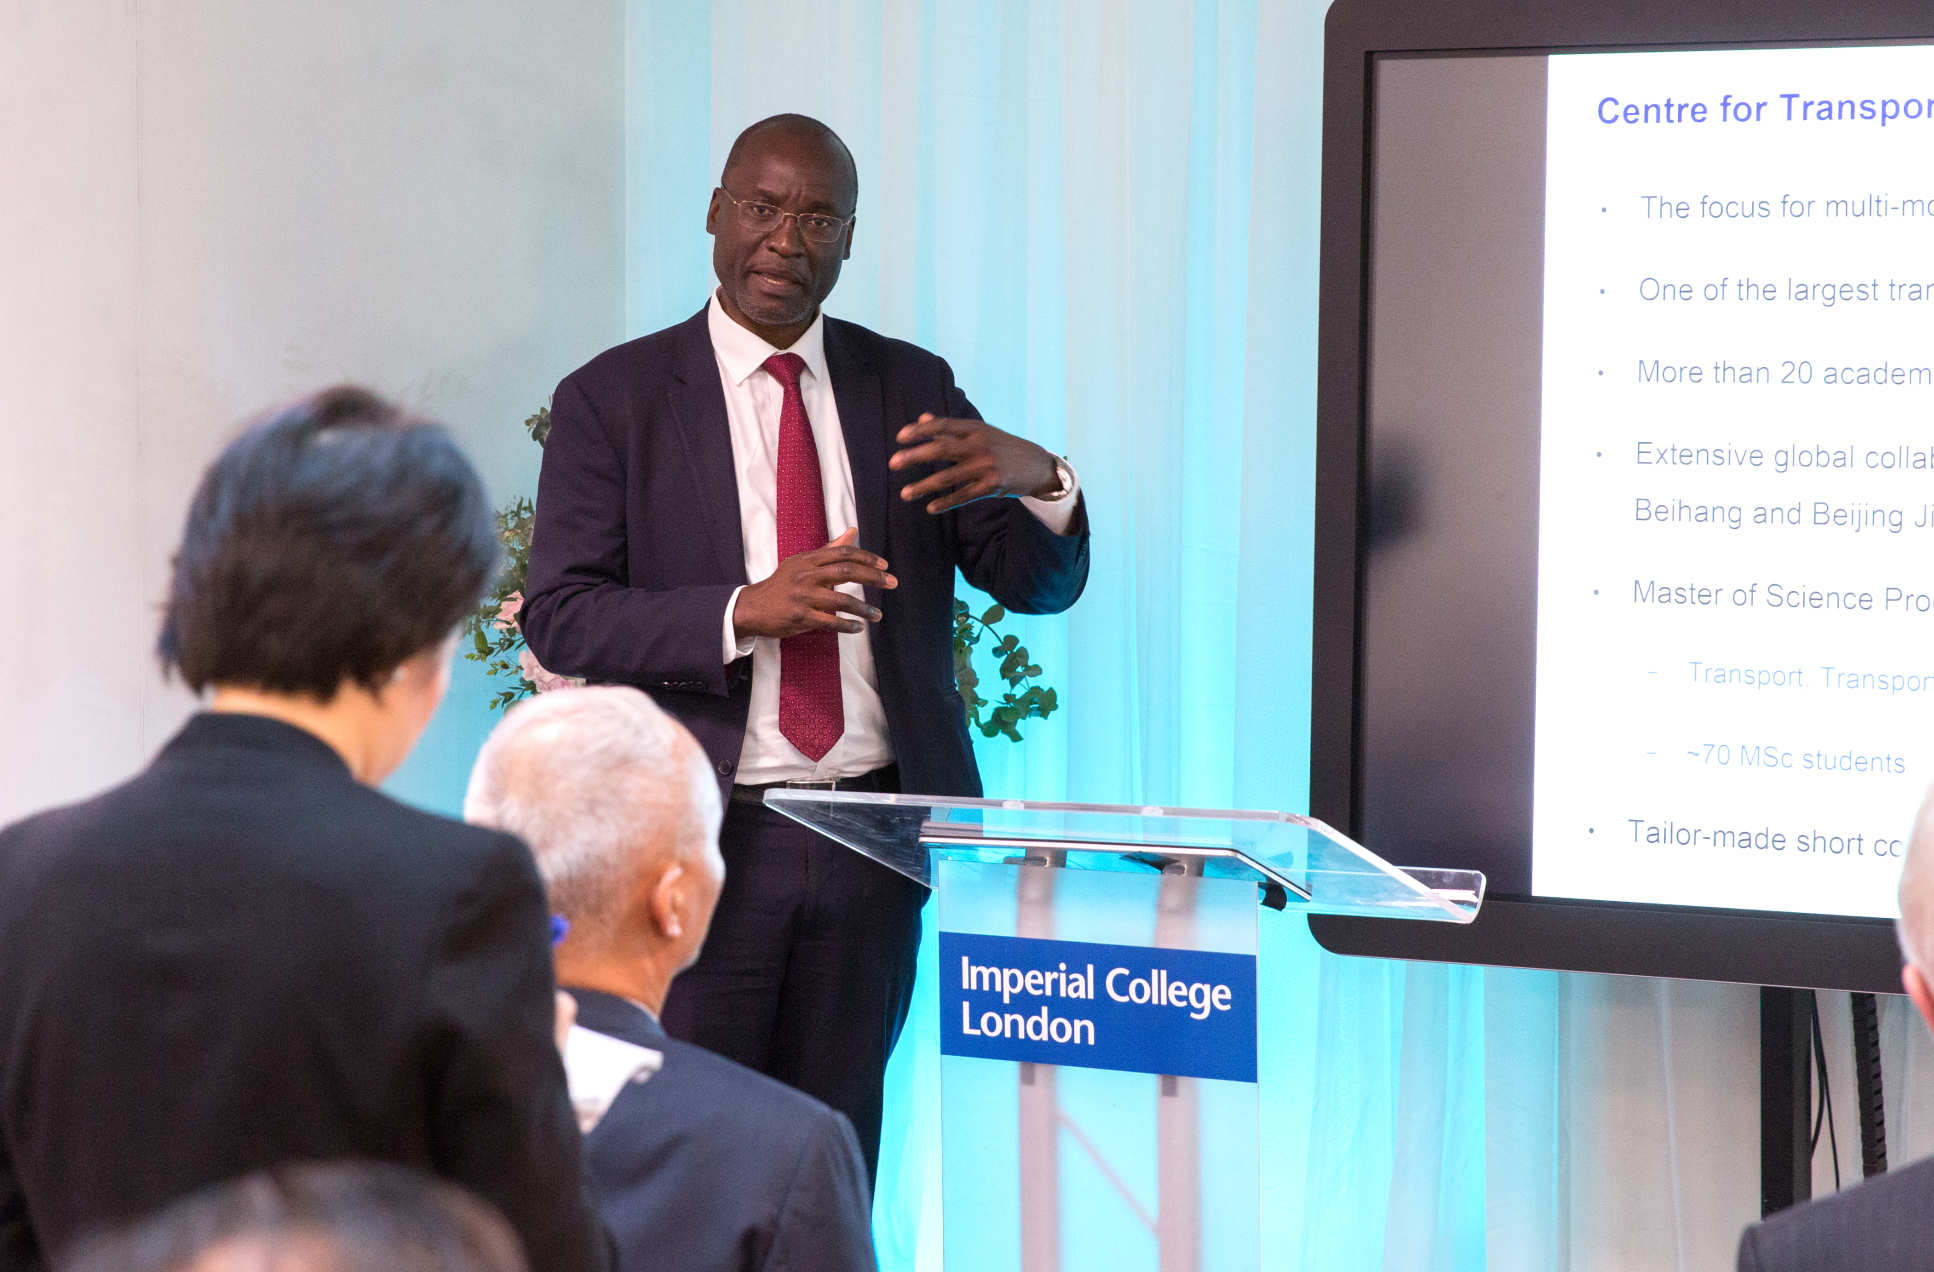 Professor Washington Ochieng, Head of the Centre for Transport Studies